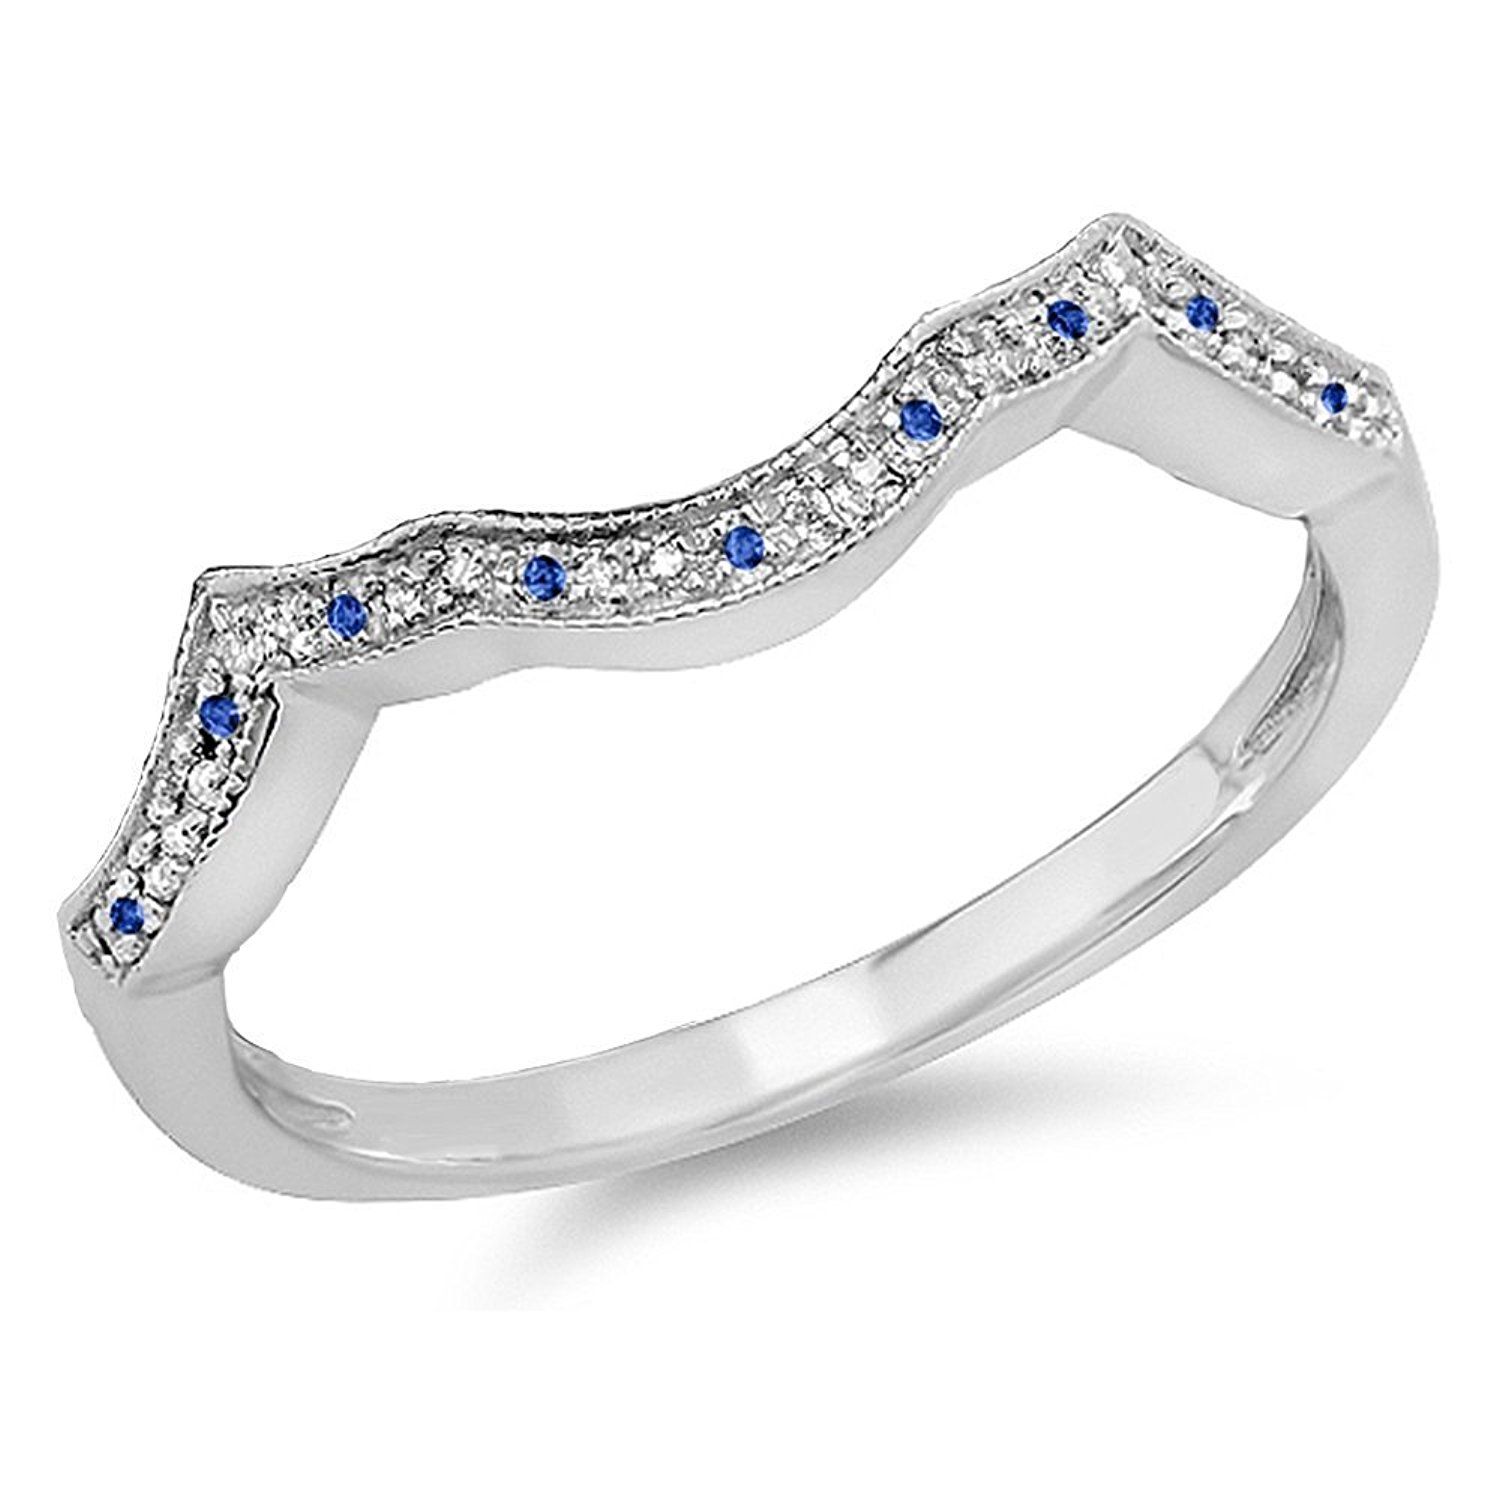 DazzlingRock Collection 14K White Gold Round Blue Sapphire & White Diamond Ladies Wedding Stackable Band Anniversary Guard Ring